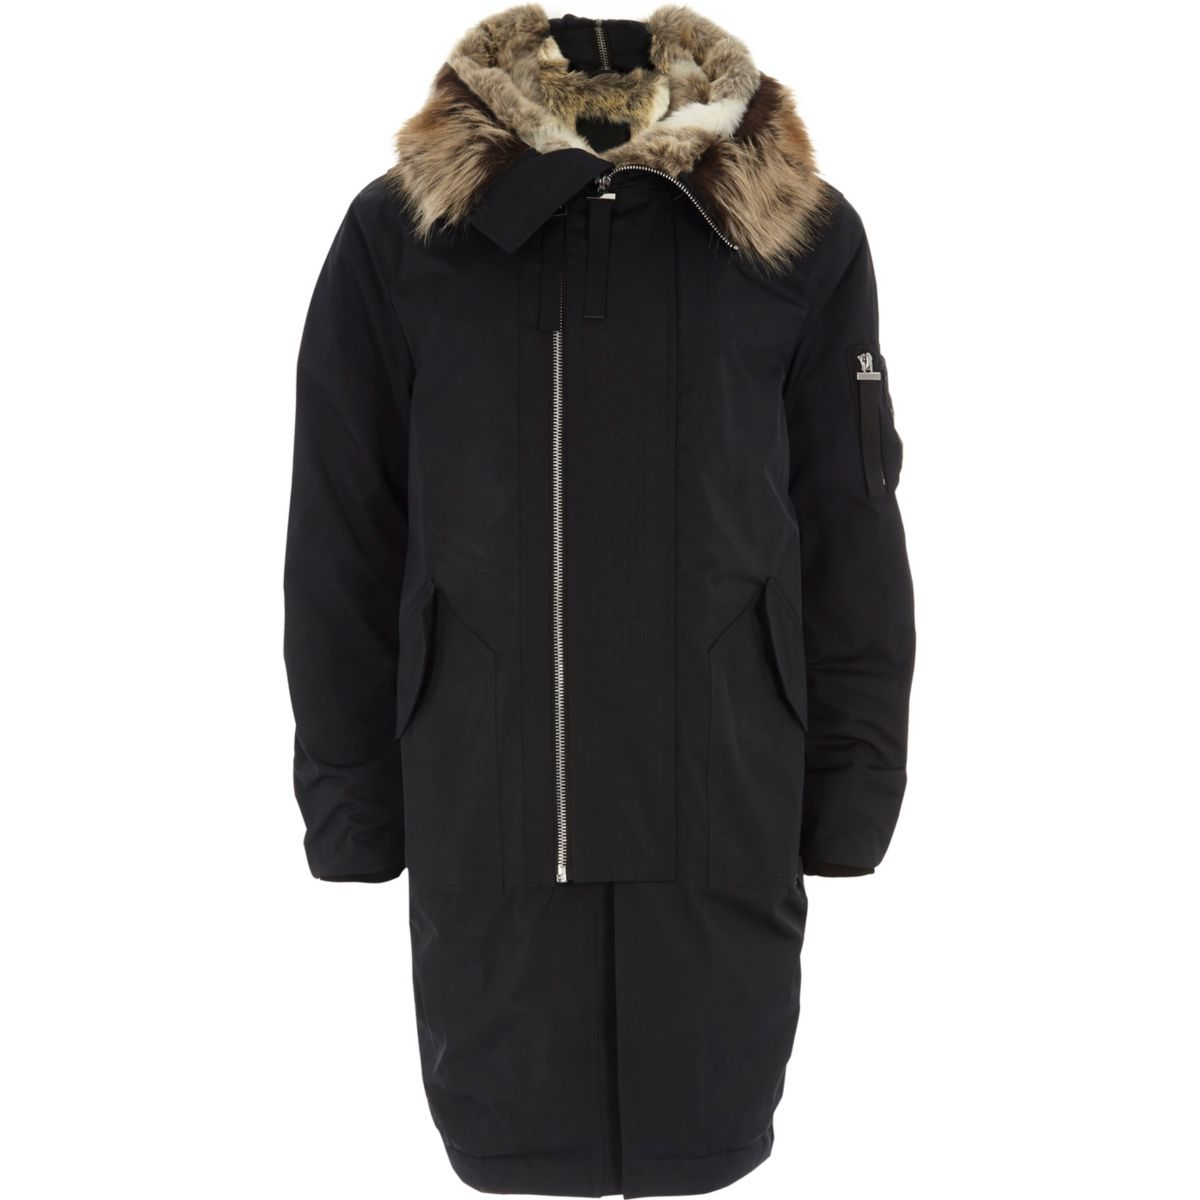 Black faux fur lined double zip hooded parka